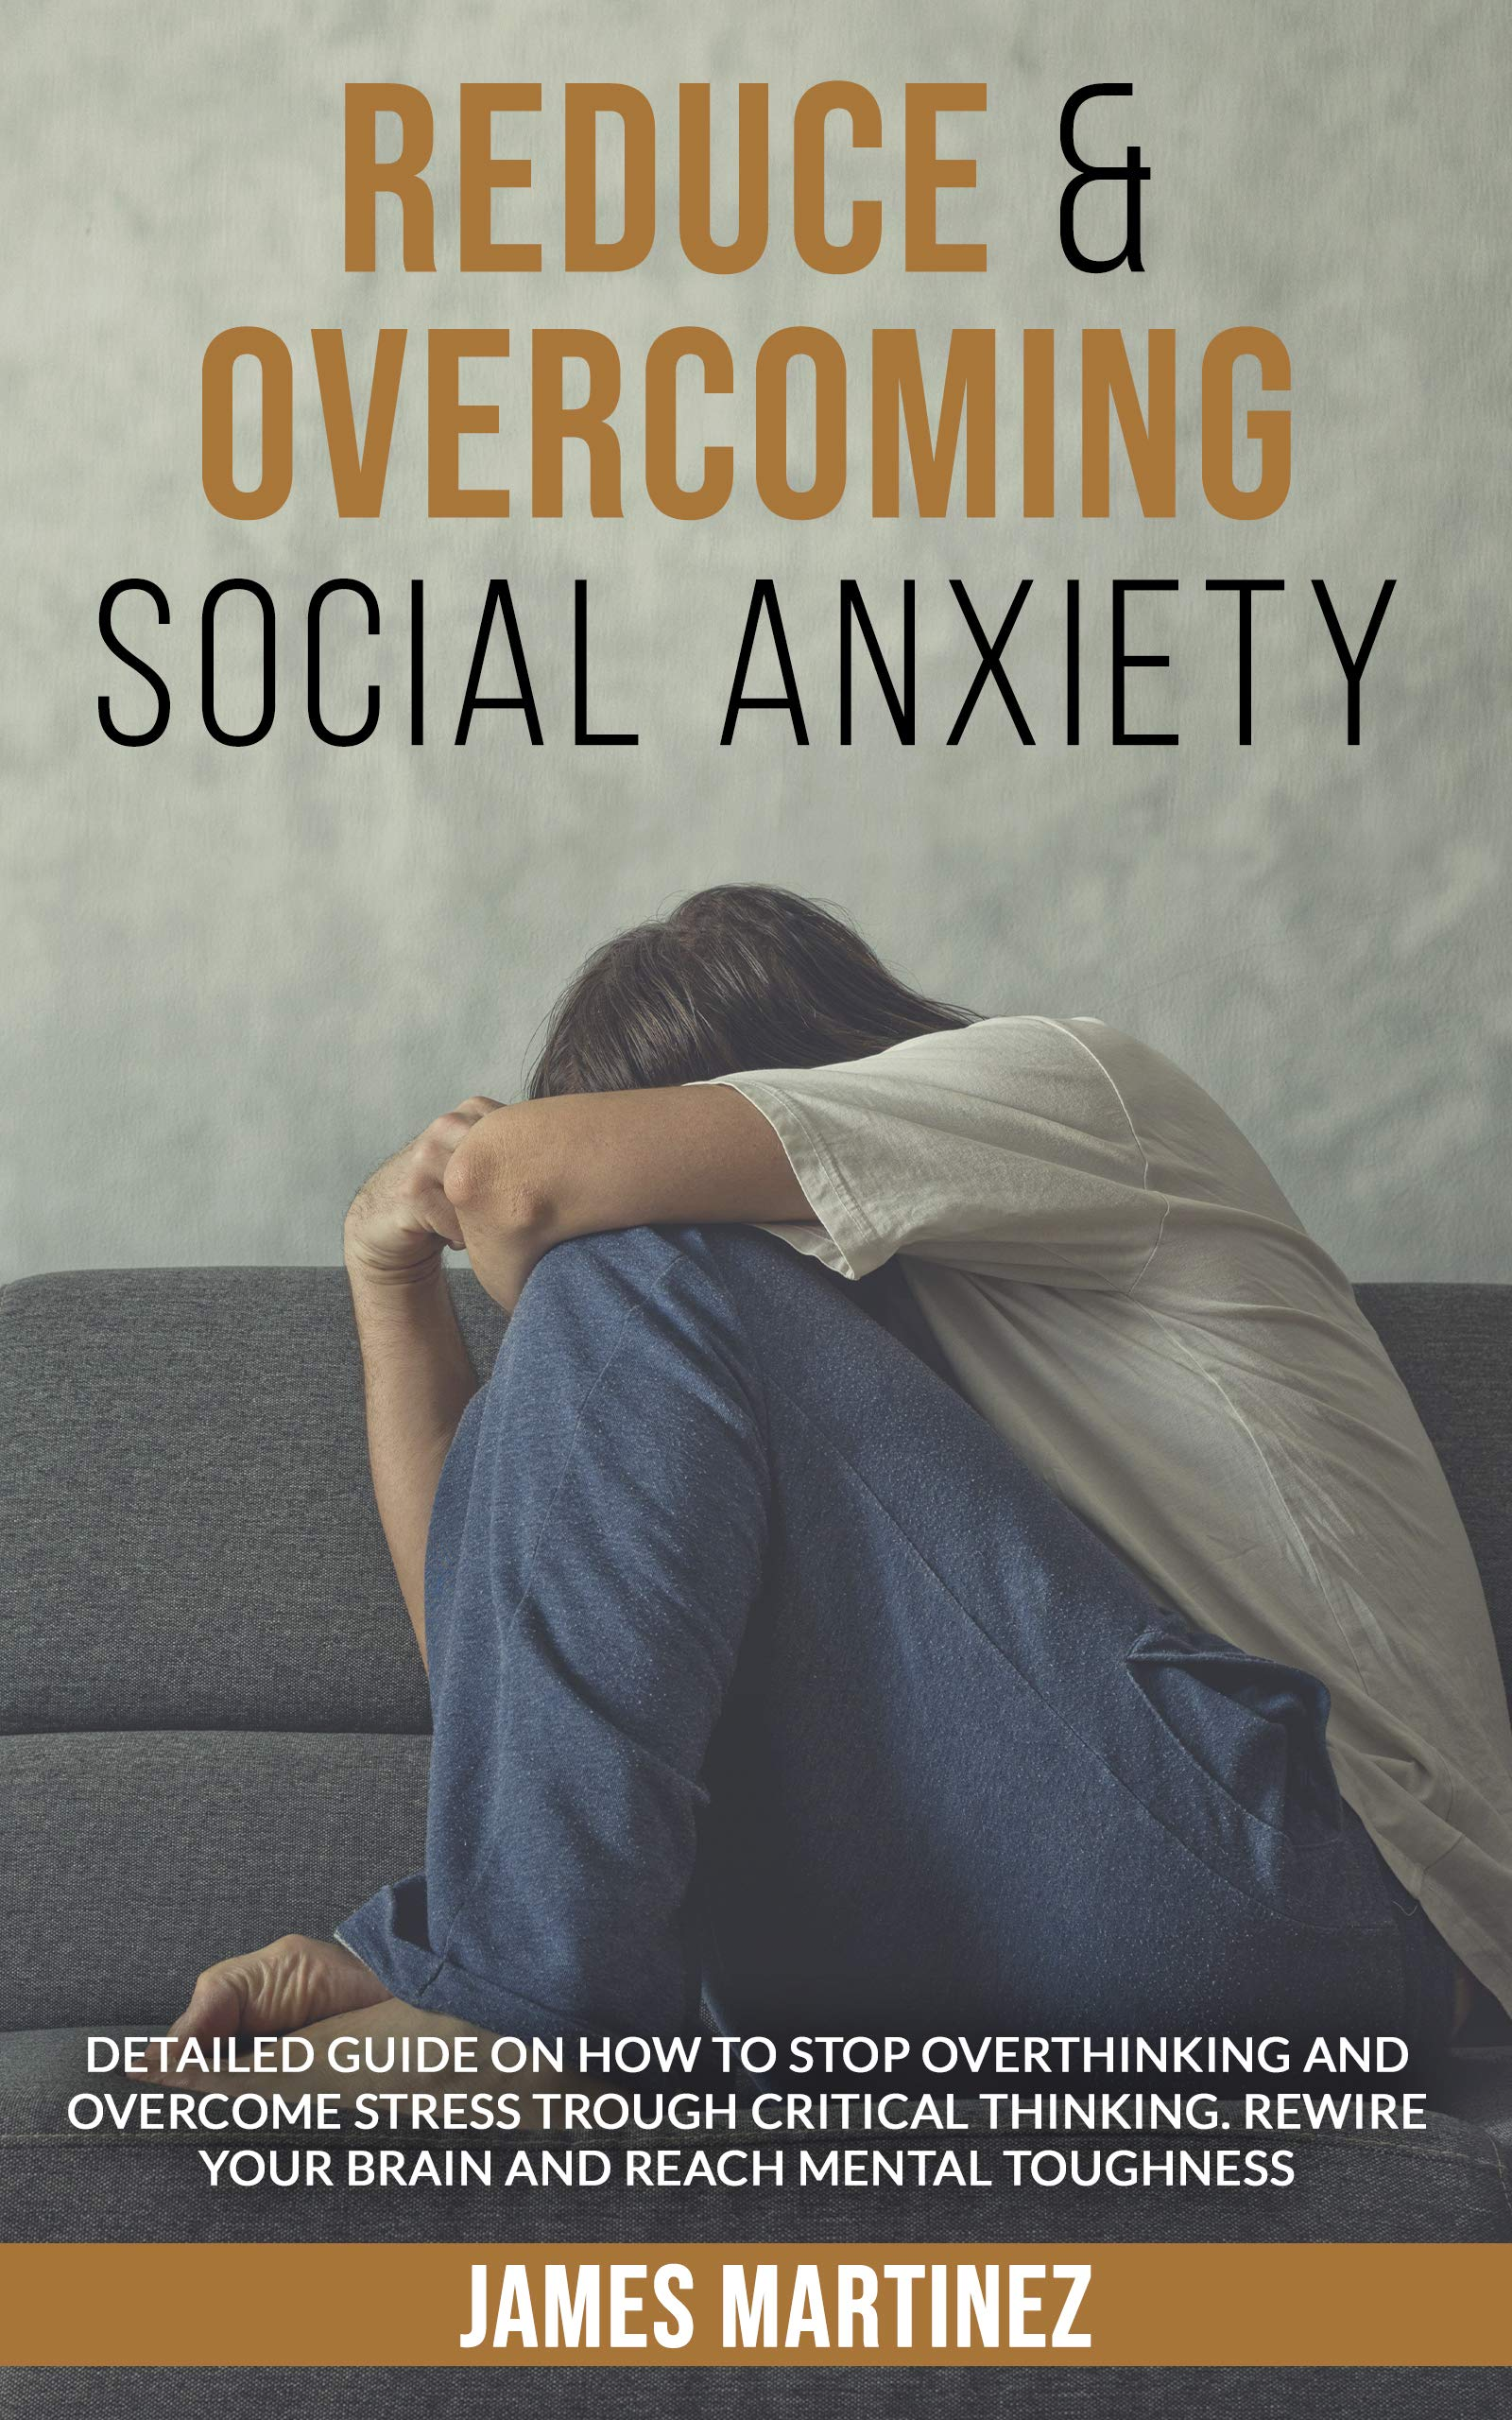 REDUCE & OVERCOMING SOCIAL ANXIETY: DETAILED GUIDE ON HOW TO STOP OVERTHINKING AND OVERCOME STRESS THROUGH CRITICAL THINKING. REWIRE YOUR BRAIN REACHING MENTAL TOUGHNESS.